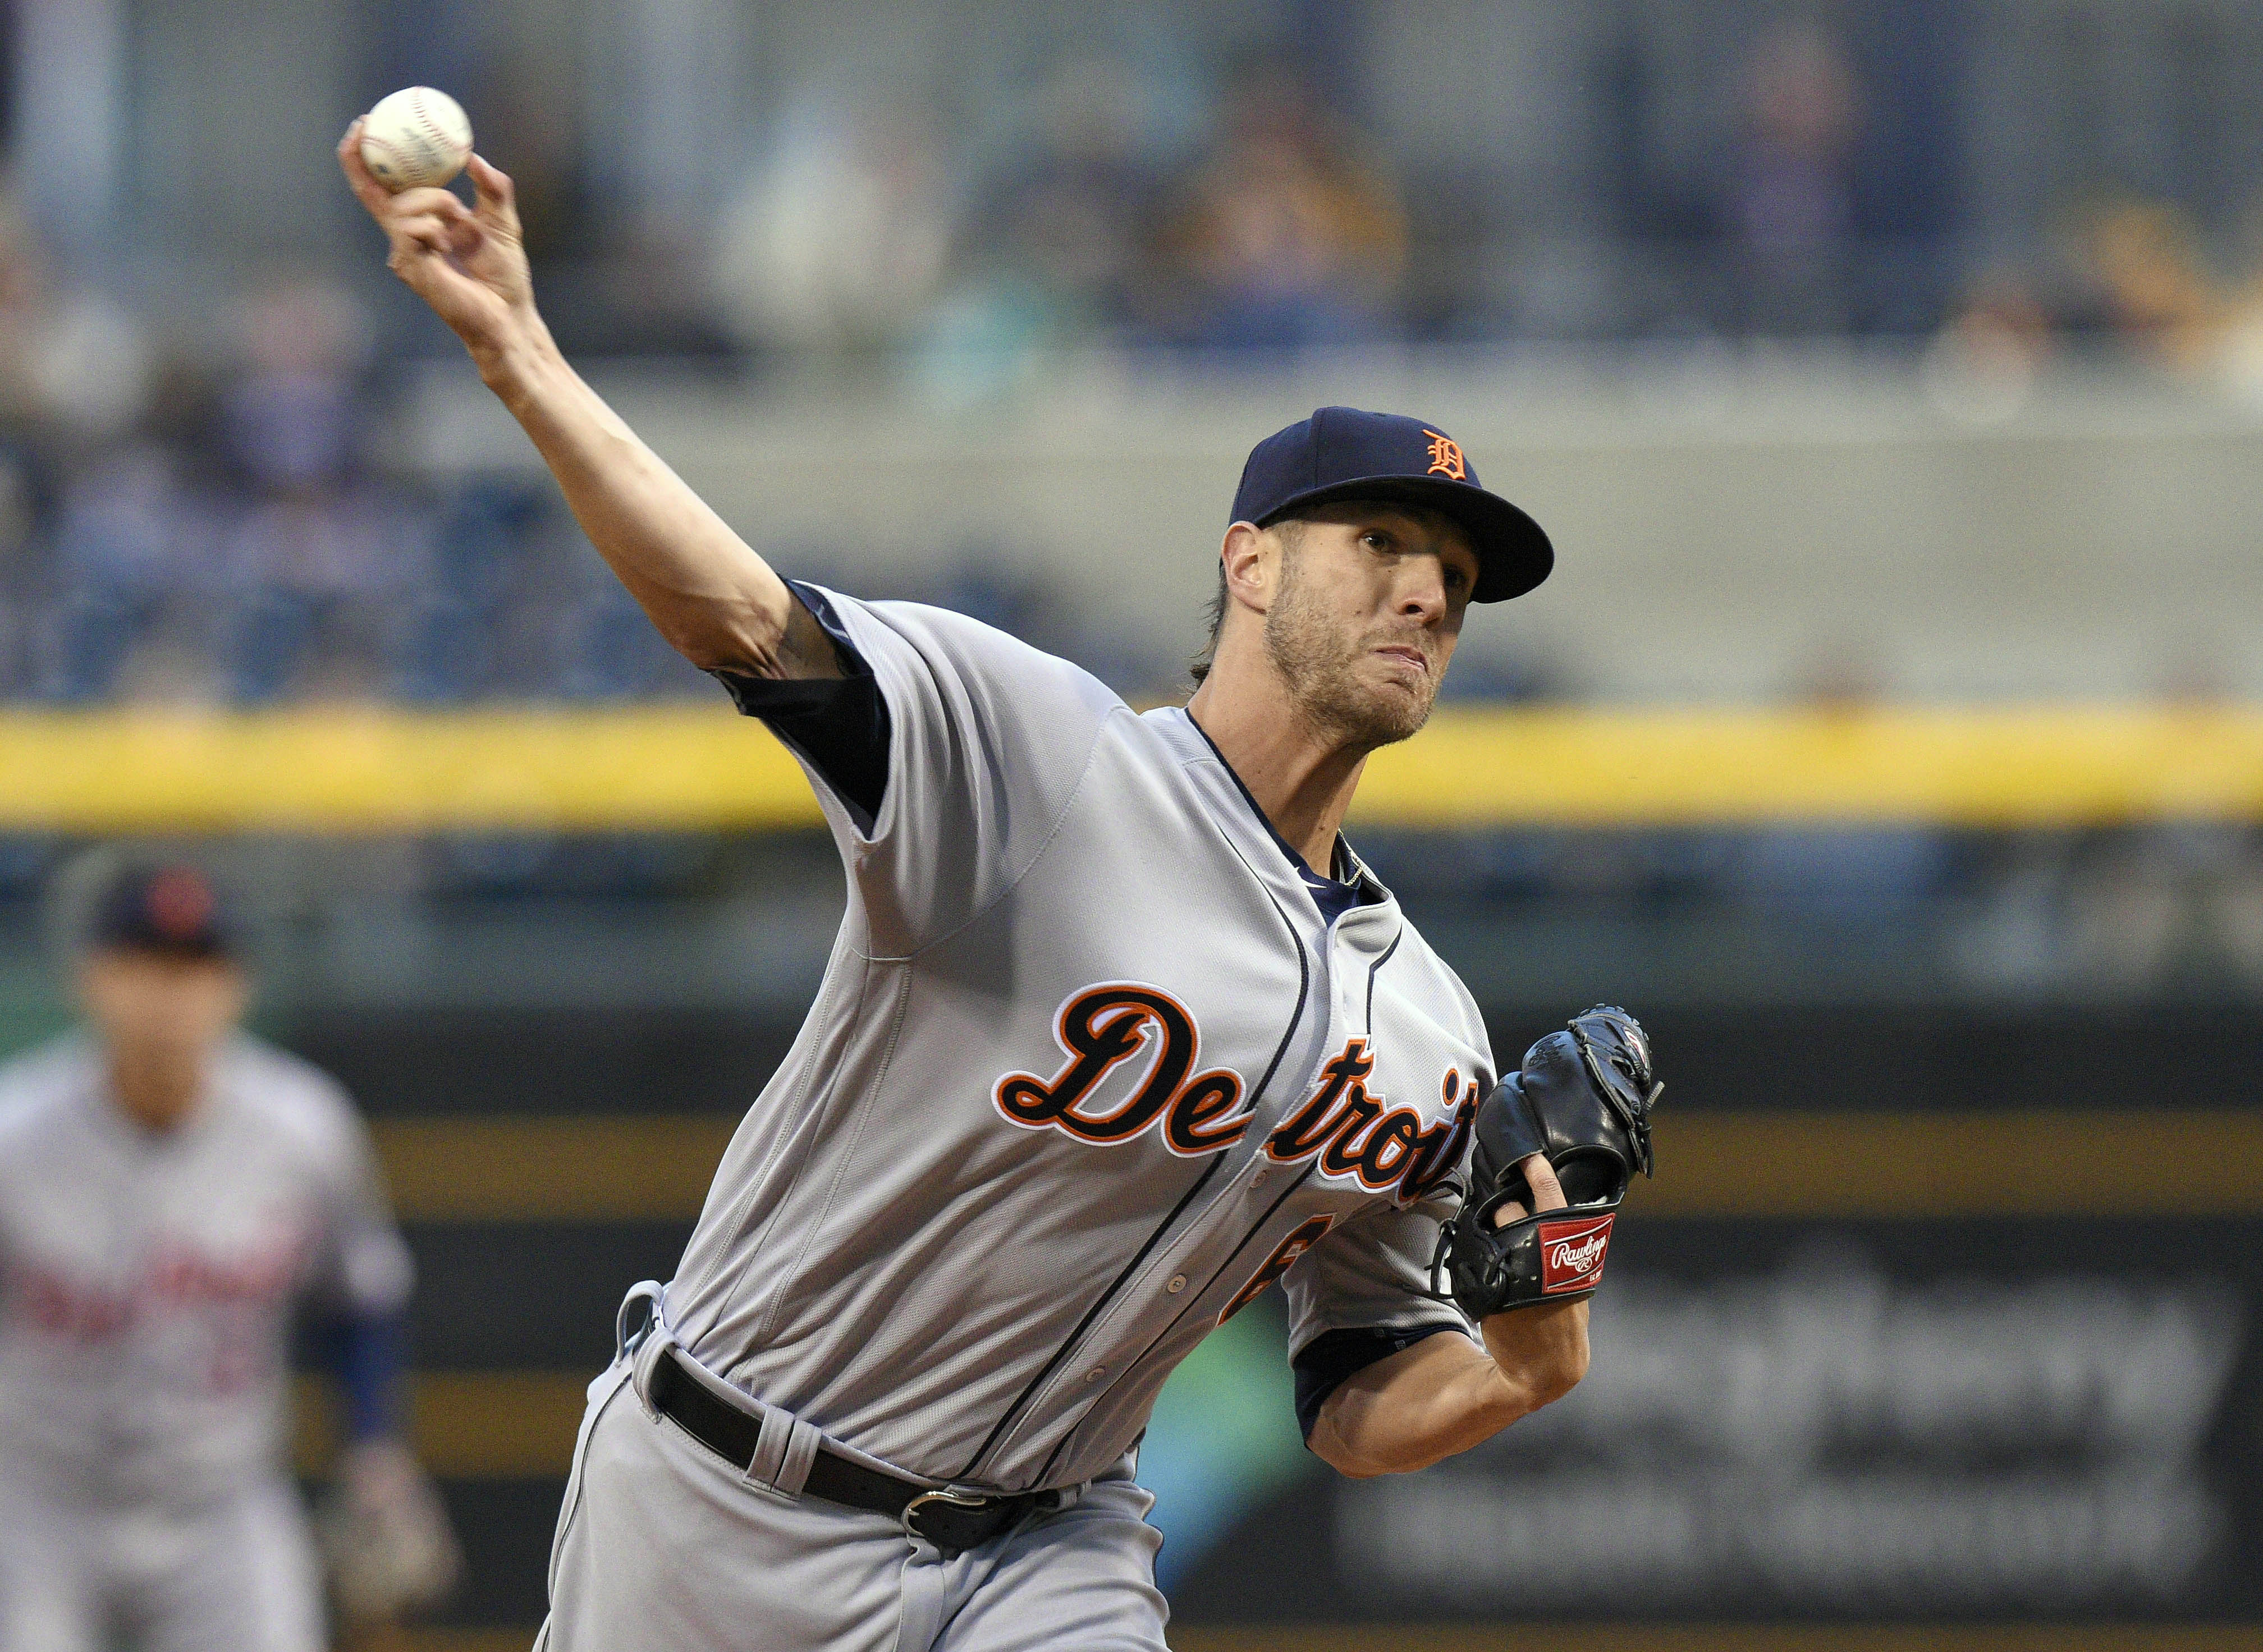 Detroit Tigers starting pitcher Shane Greene (61) delivers against the Pittsburgh Pirates during the first inning of a baseball game on Wednesday, April 13, 2016, in Pittsburgh. (AP Photo/Don Wright)